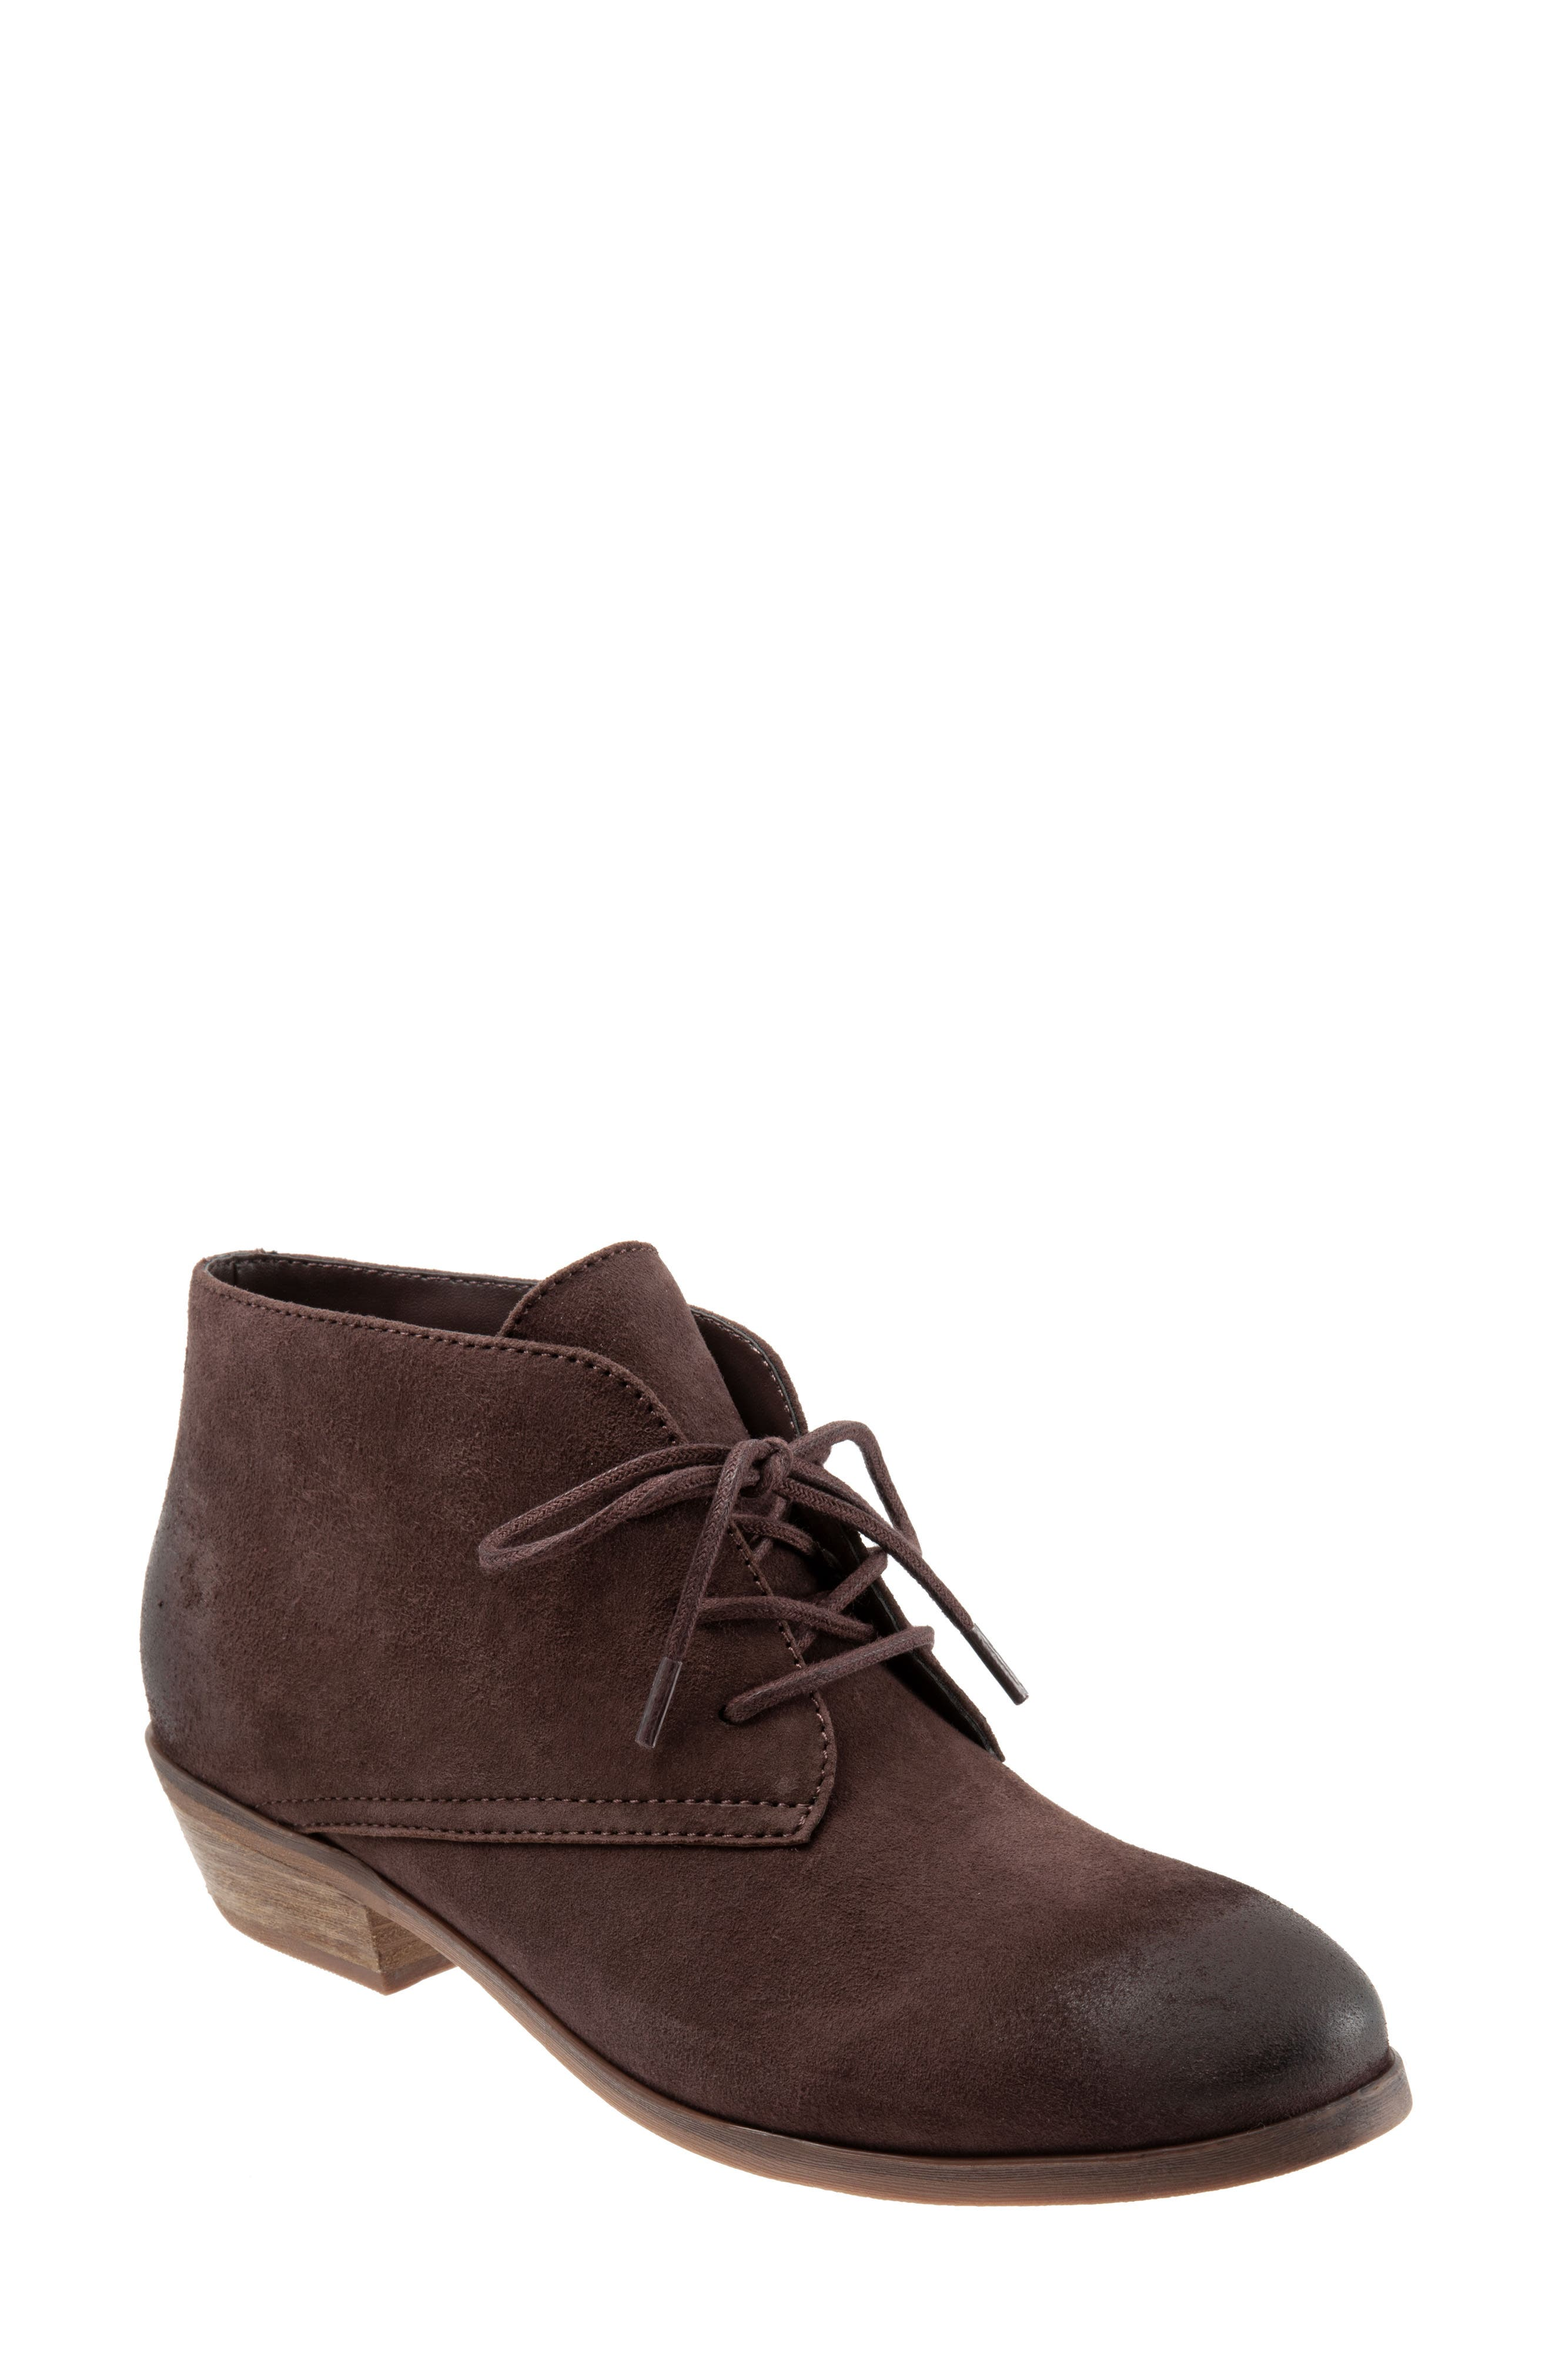 'Ramsey' Chukka Boot,                         Main,                         color, DARK BROWN LEATHER